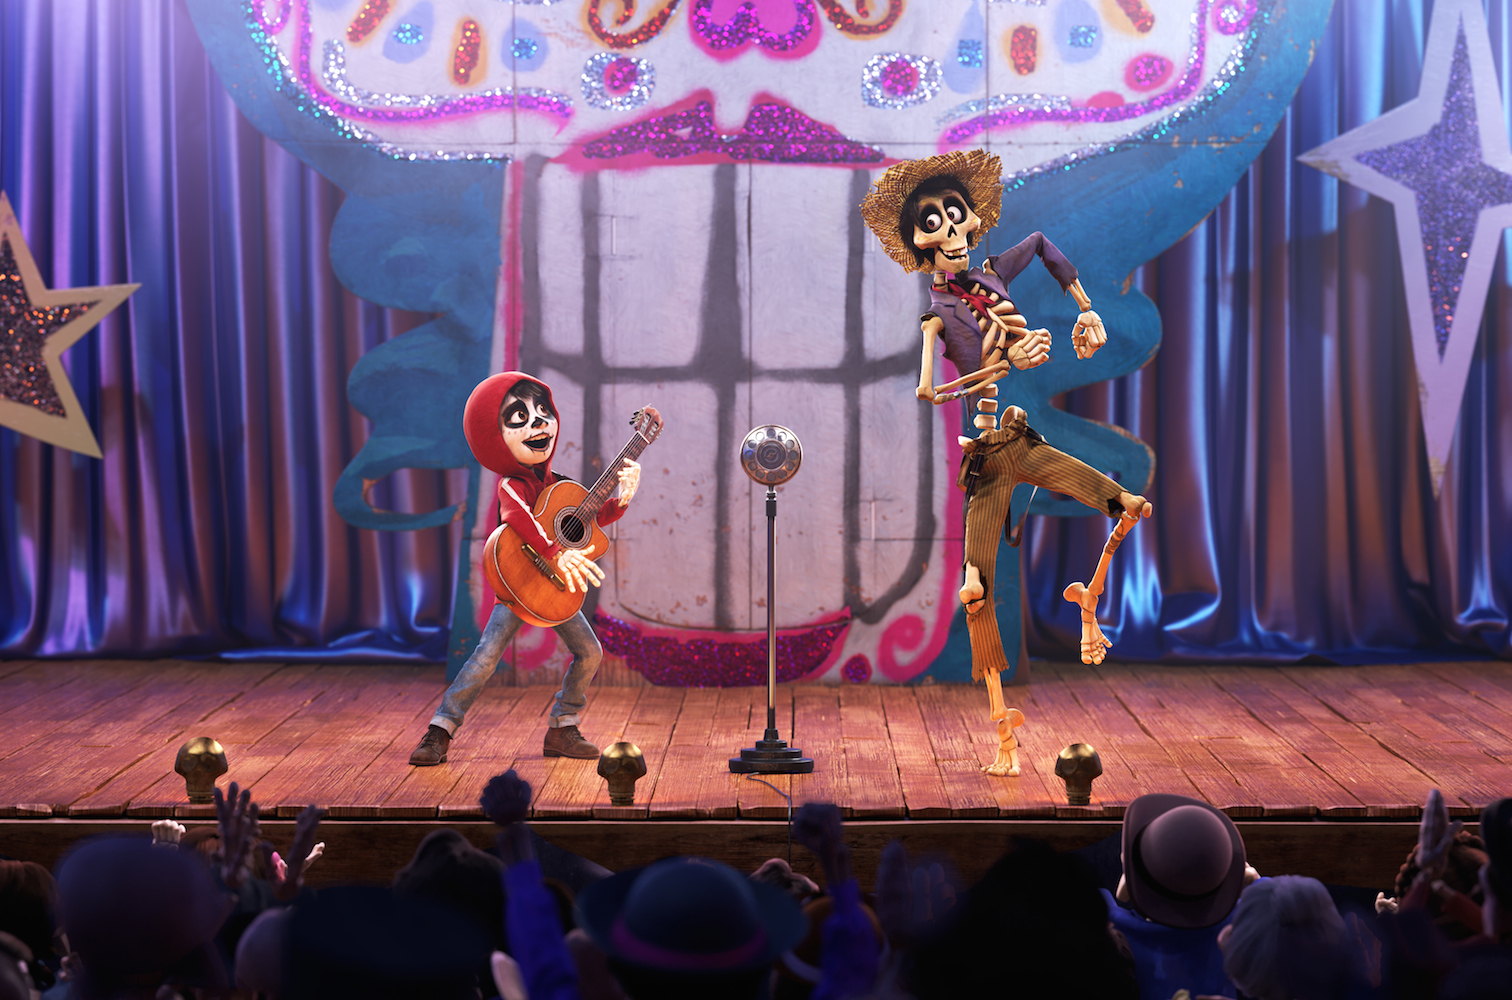 Here's Where You Can See Pixar's 'Coco' in Spanish